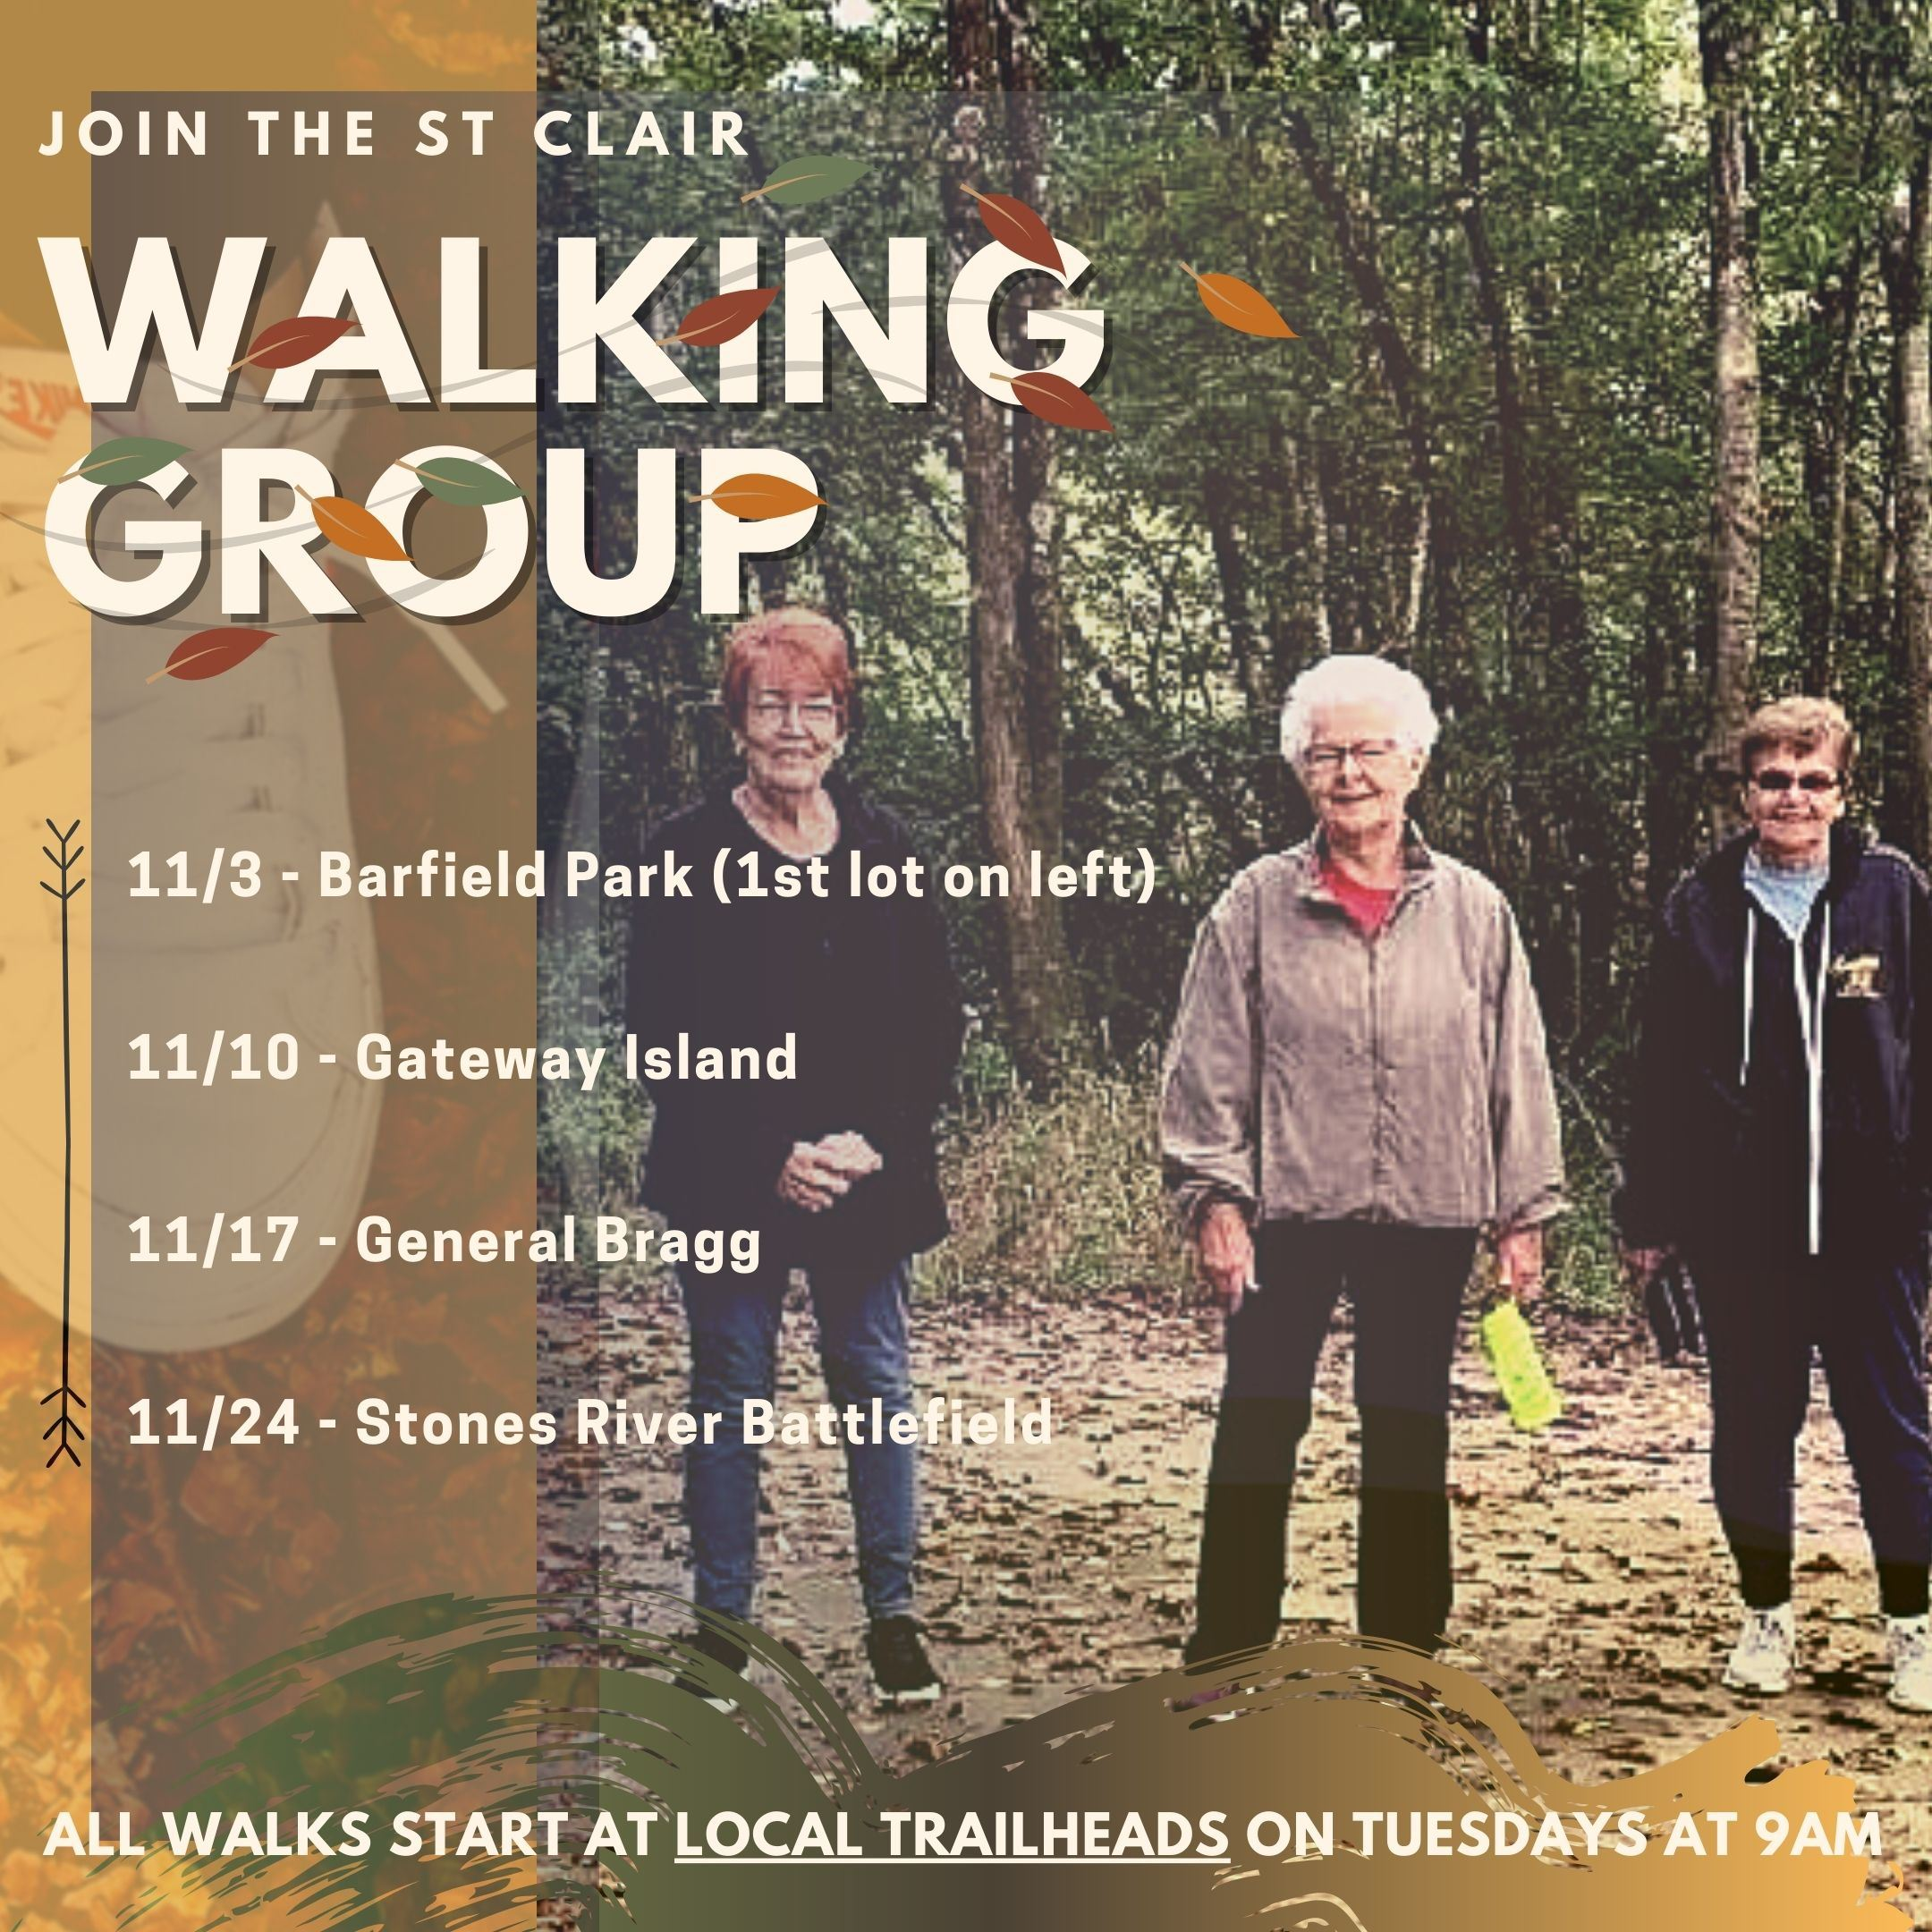 advertisement for st. clair walking group with dates locations and picture of seniors walking